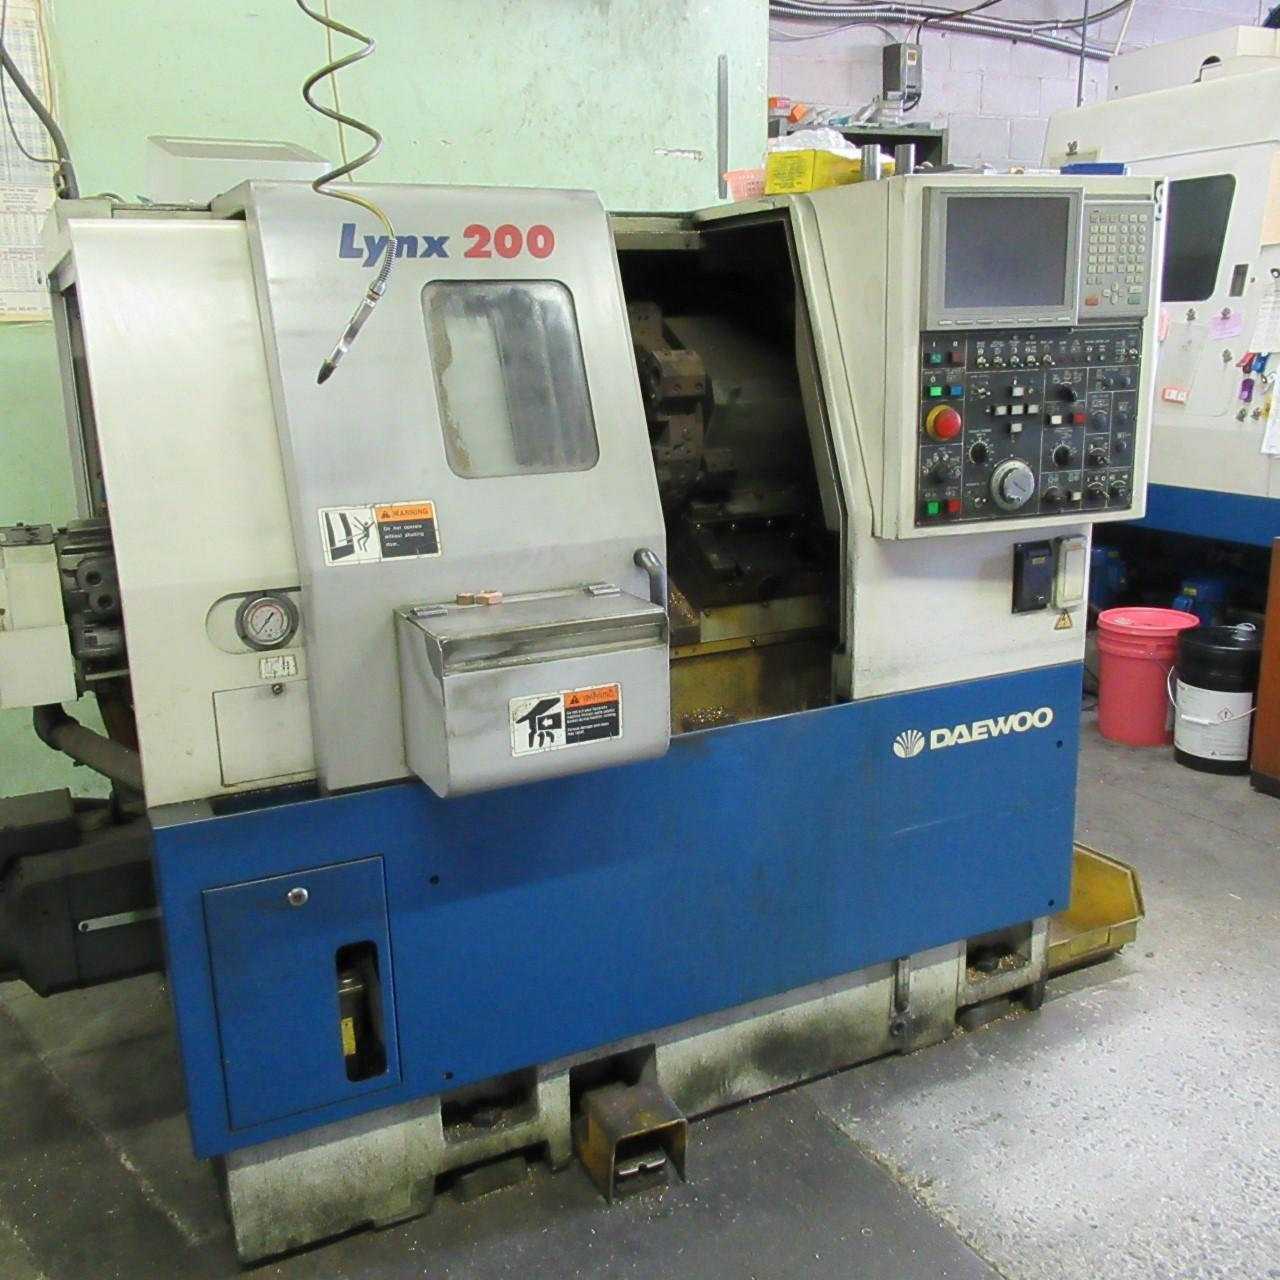 Daewoo LYNX-200B Turning Center